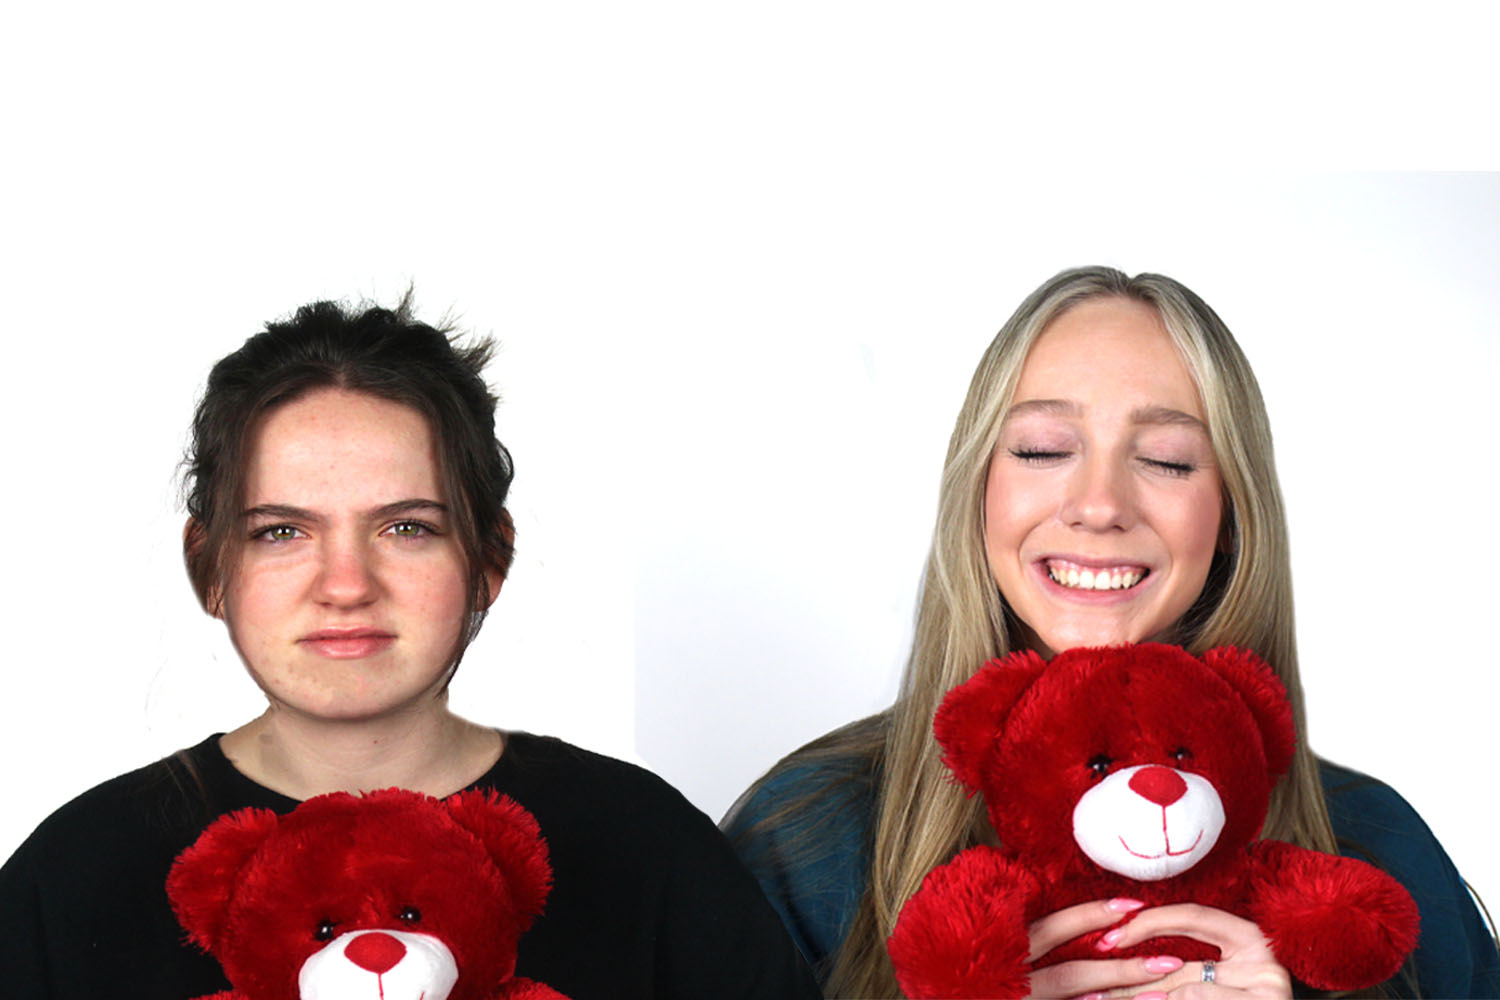 TRL's Layla Healey and Maddi Linsteadt share why their views on Valentine's Day remain true despite one's relationship status.